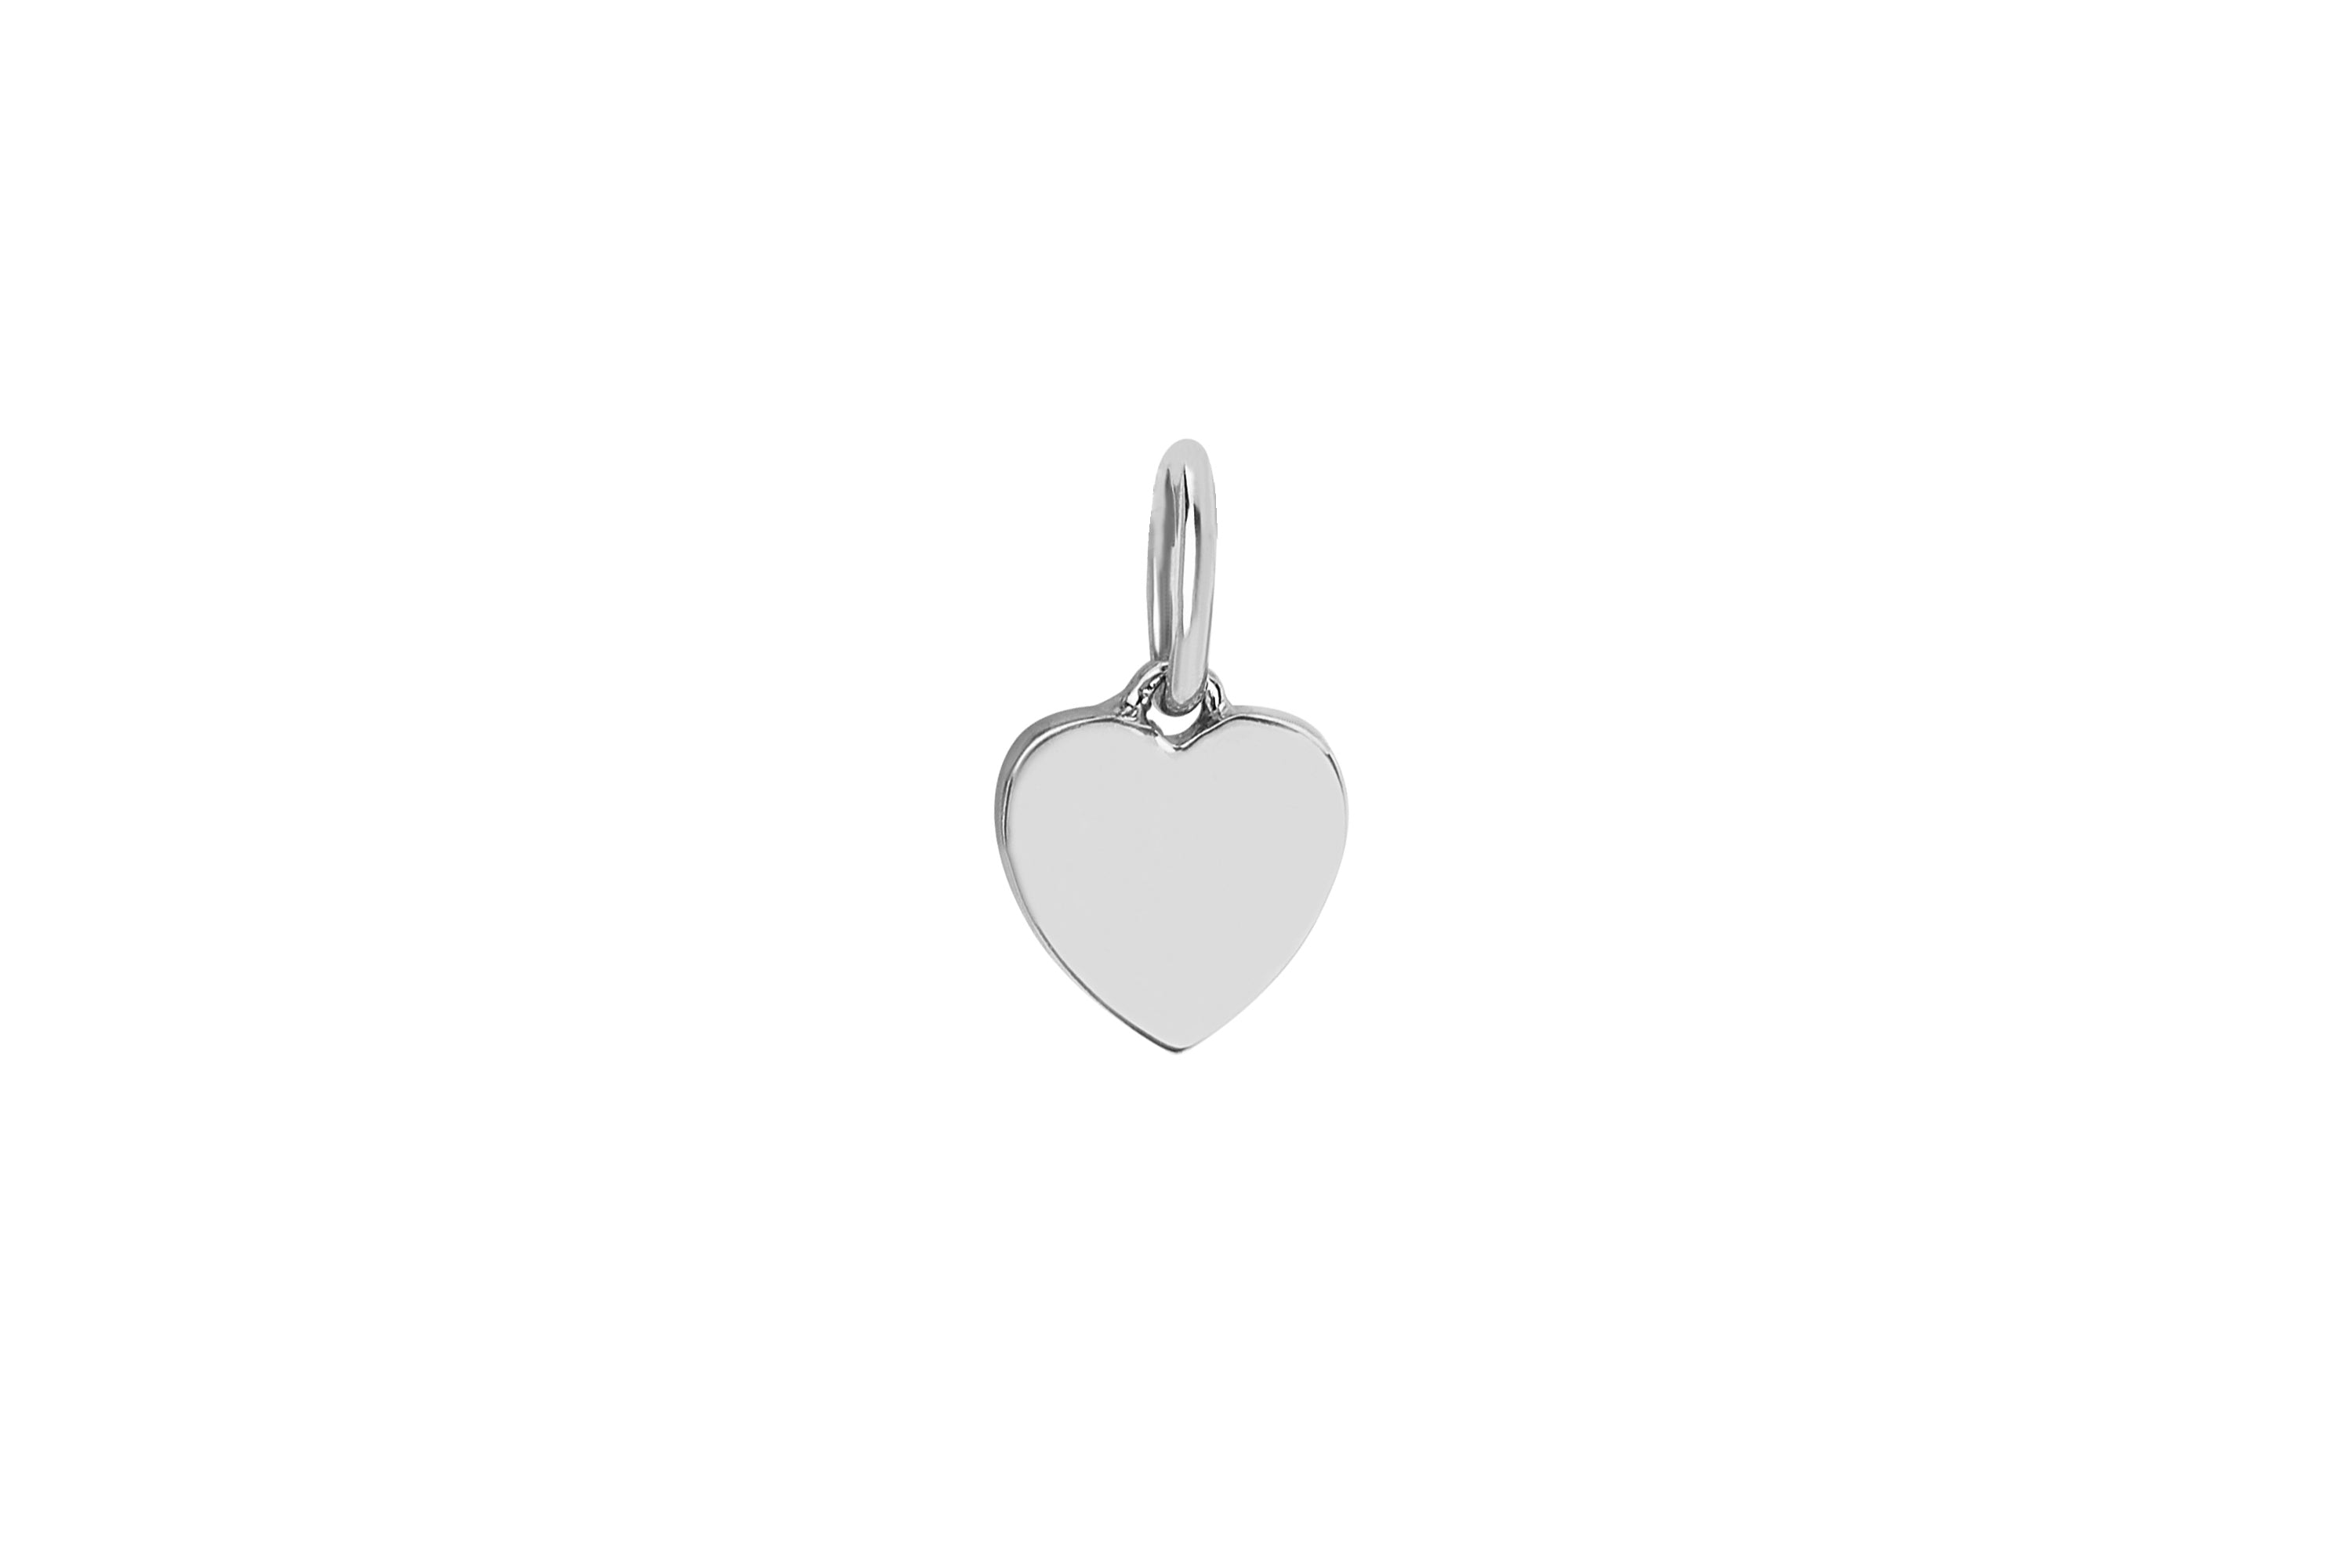 Gold Heart Necklace Charm